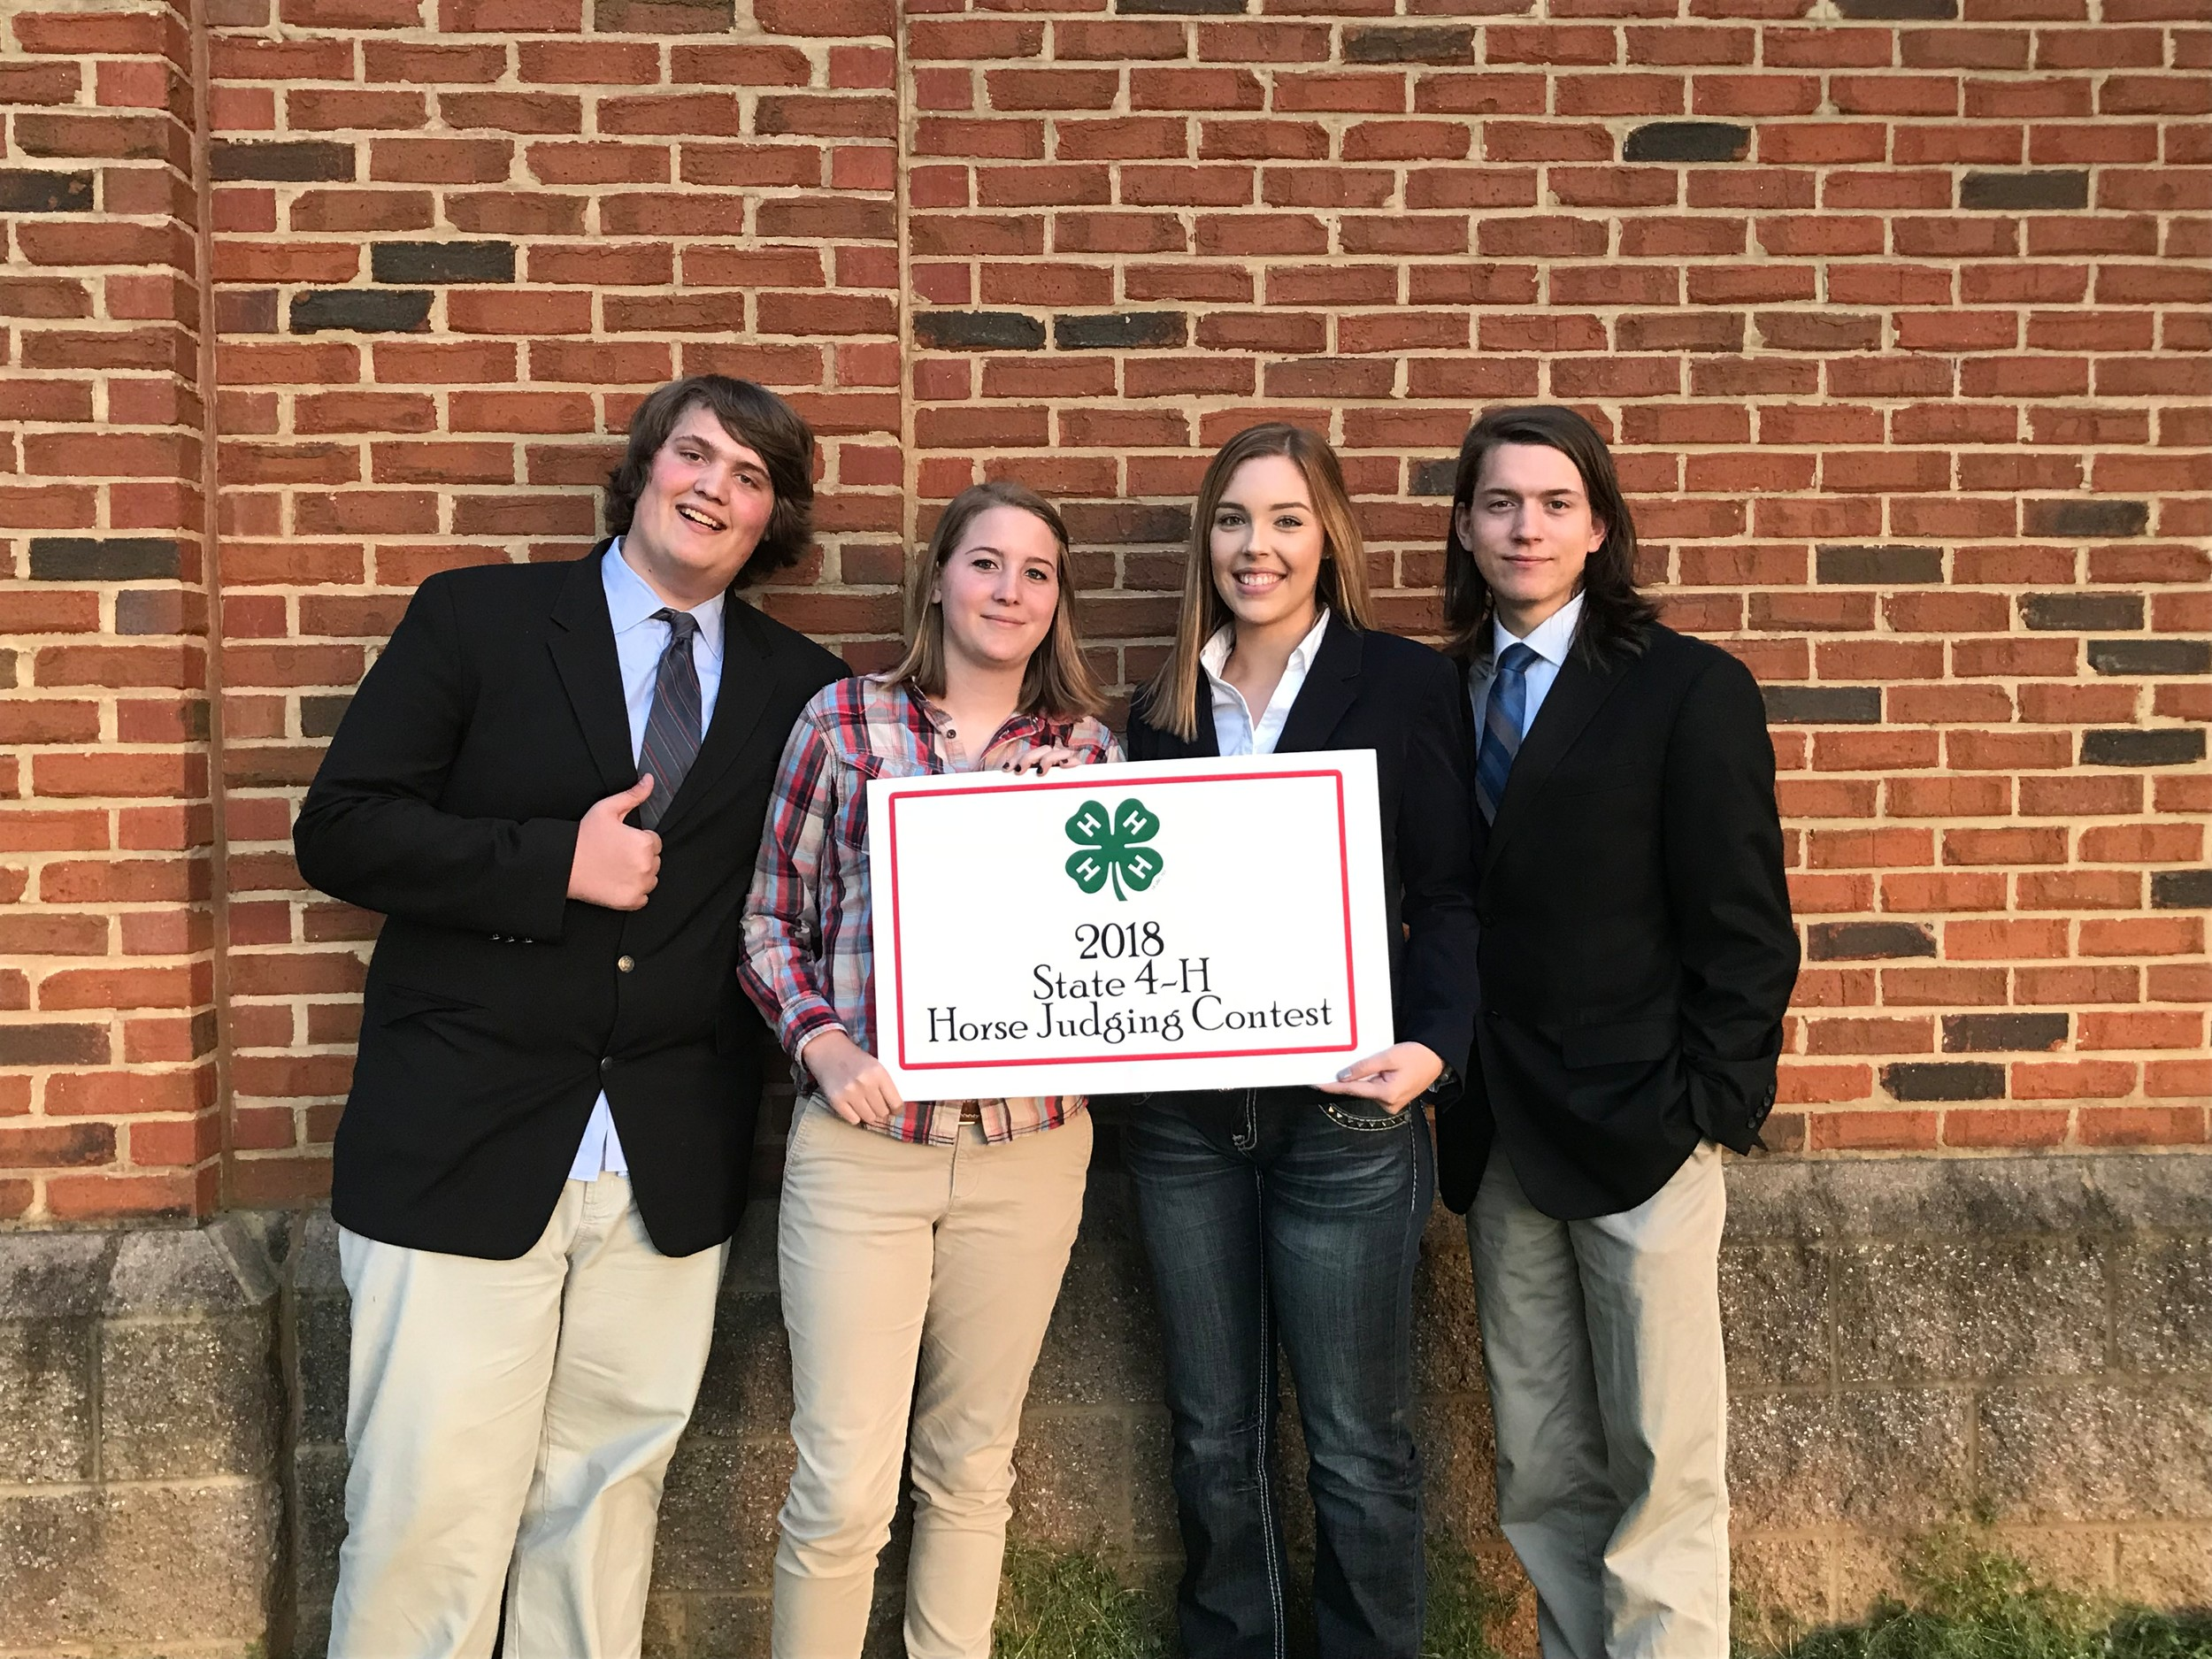 4 H Senior Horse Judging Team Takes 4th Place At State Contest The